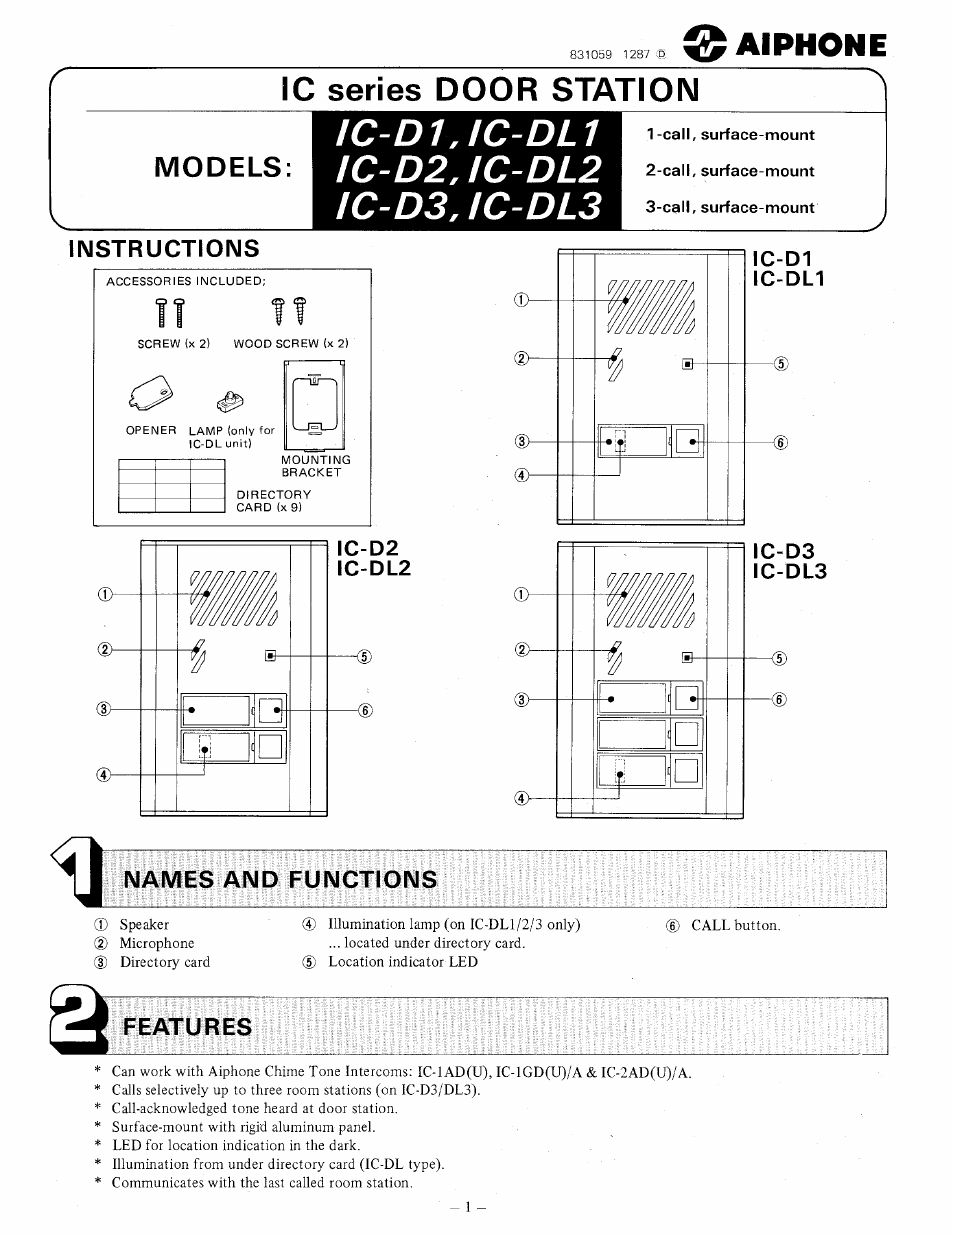 Aiphone DOOR STATION IC-DL1 User Manual | 4 pages | Also for ... on